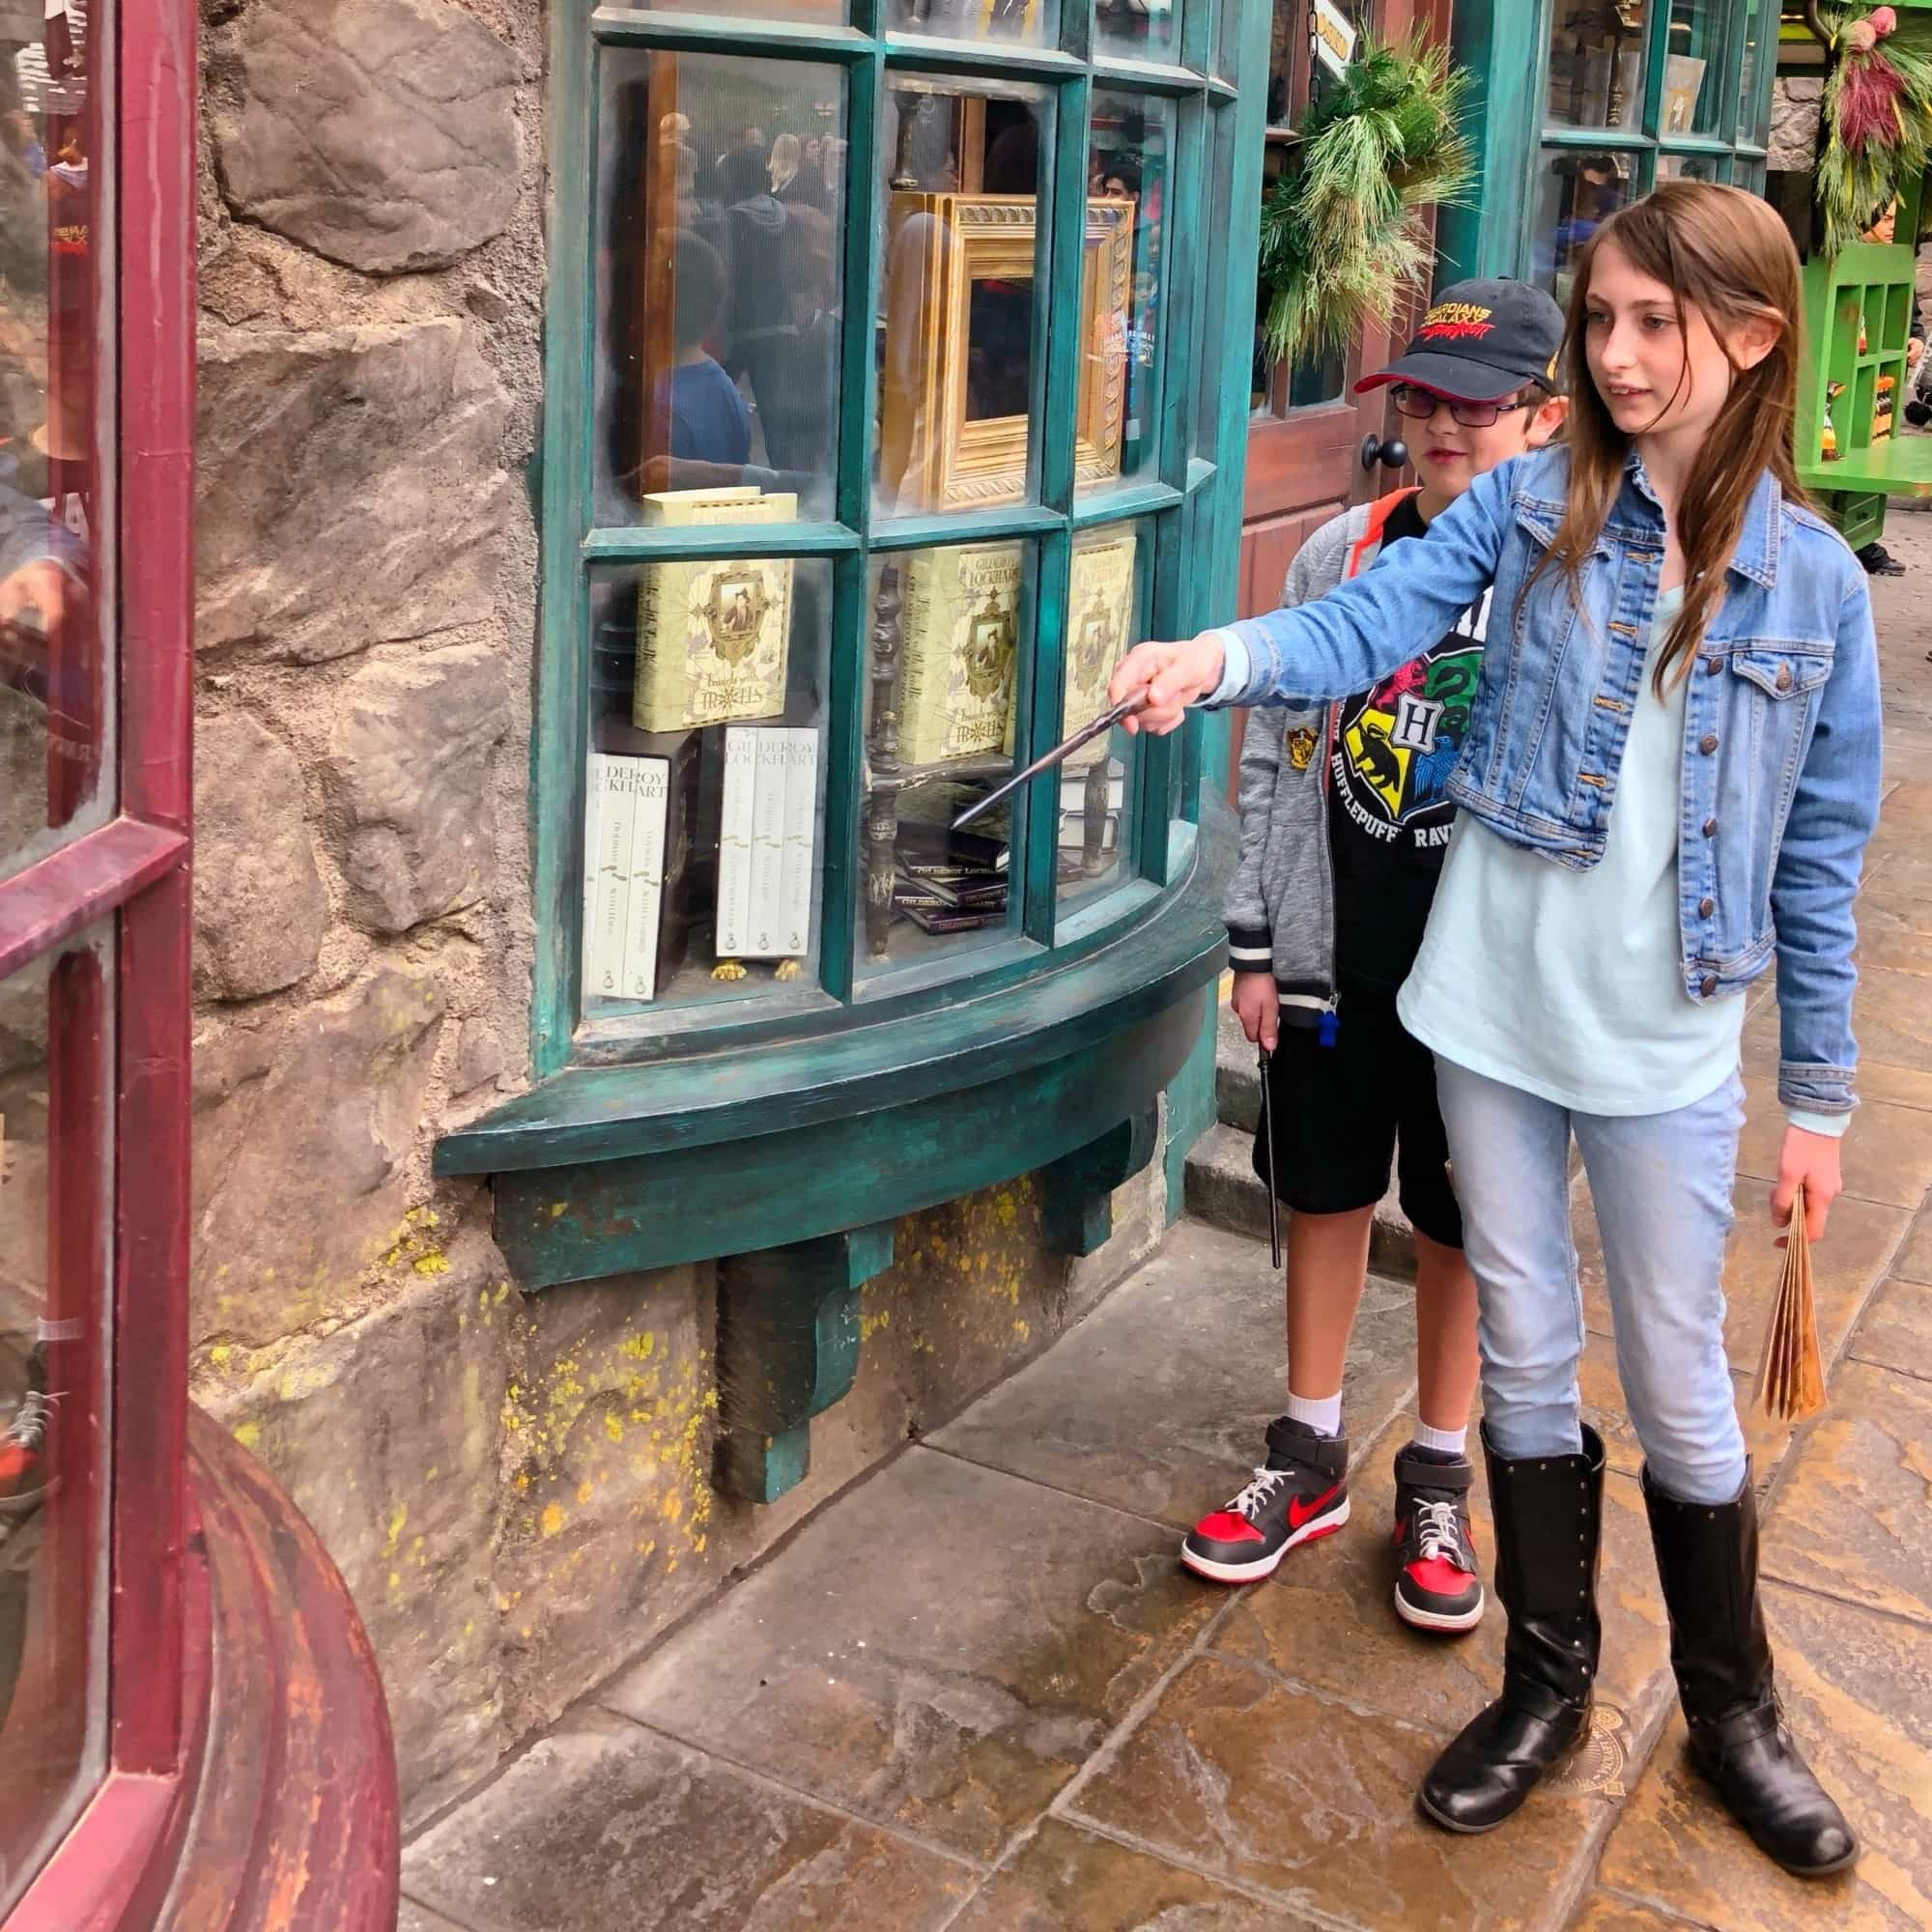 The wands bring magic to life at The Wizarding World of Harry Potter